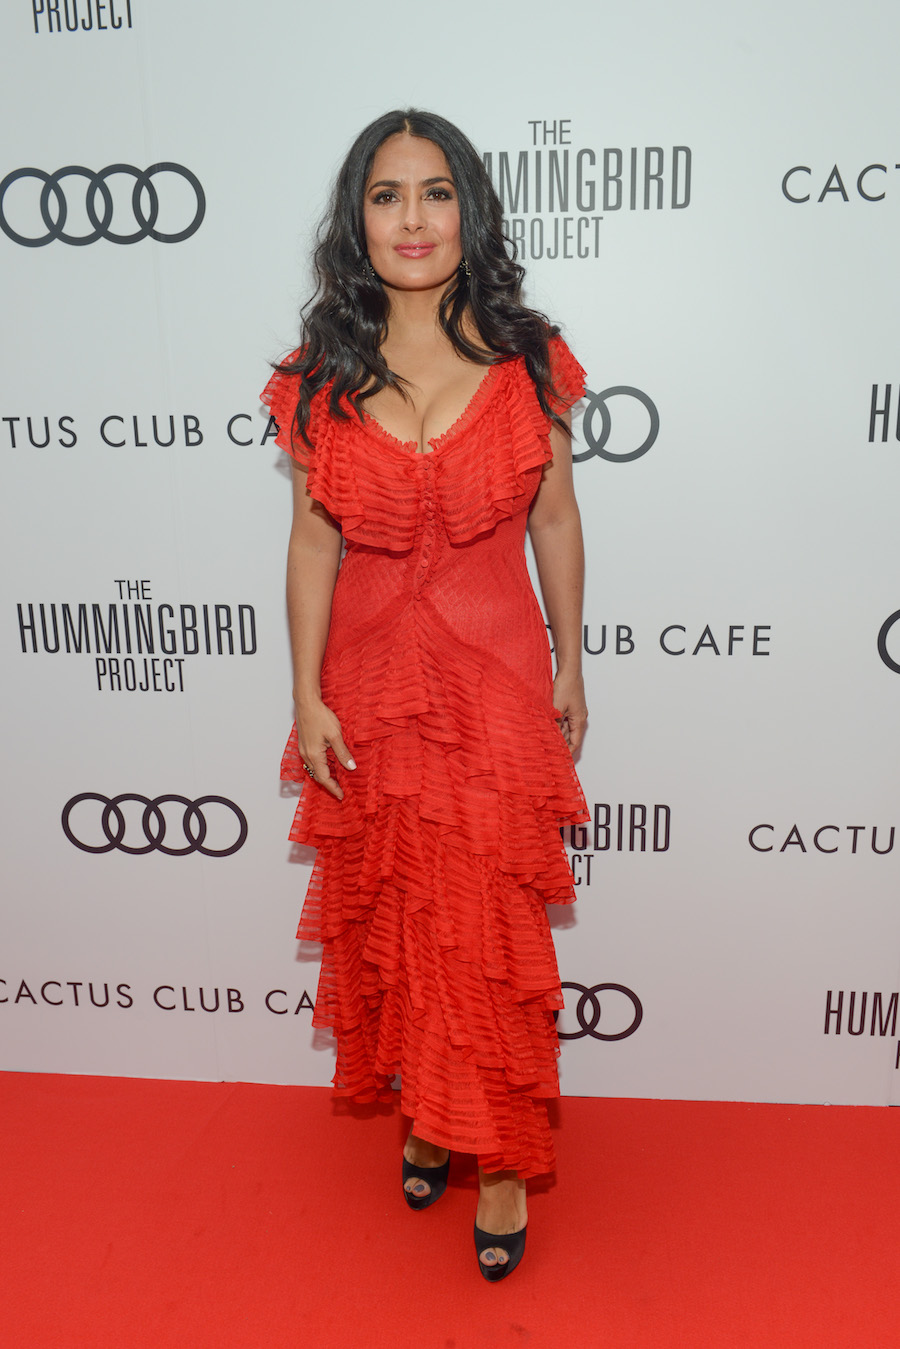 Salma Hayek at 'The Hummingbird Project' premiere party hosted by Cactus Club Cafe at First Canadian Place. (Photo: George Pimentel/Getty Images for Cactus Club Cafe) | View the VIBE